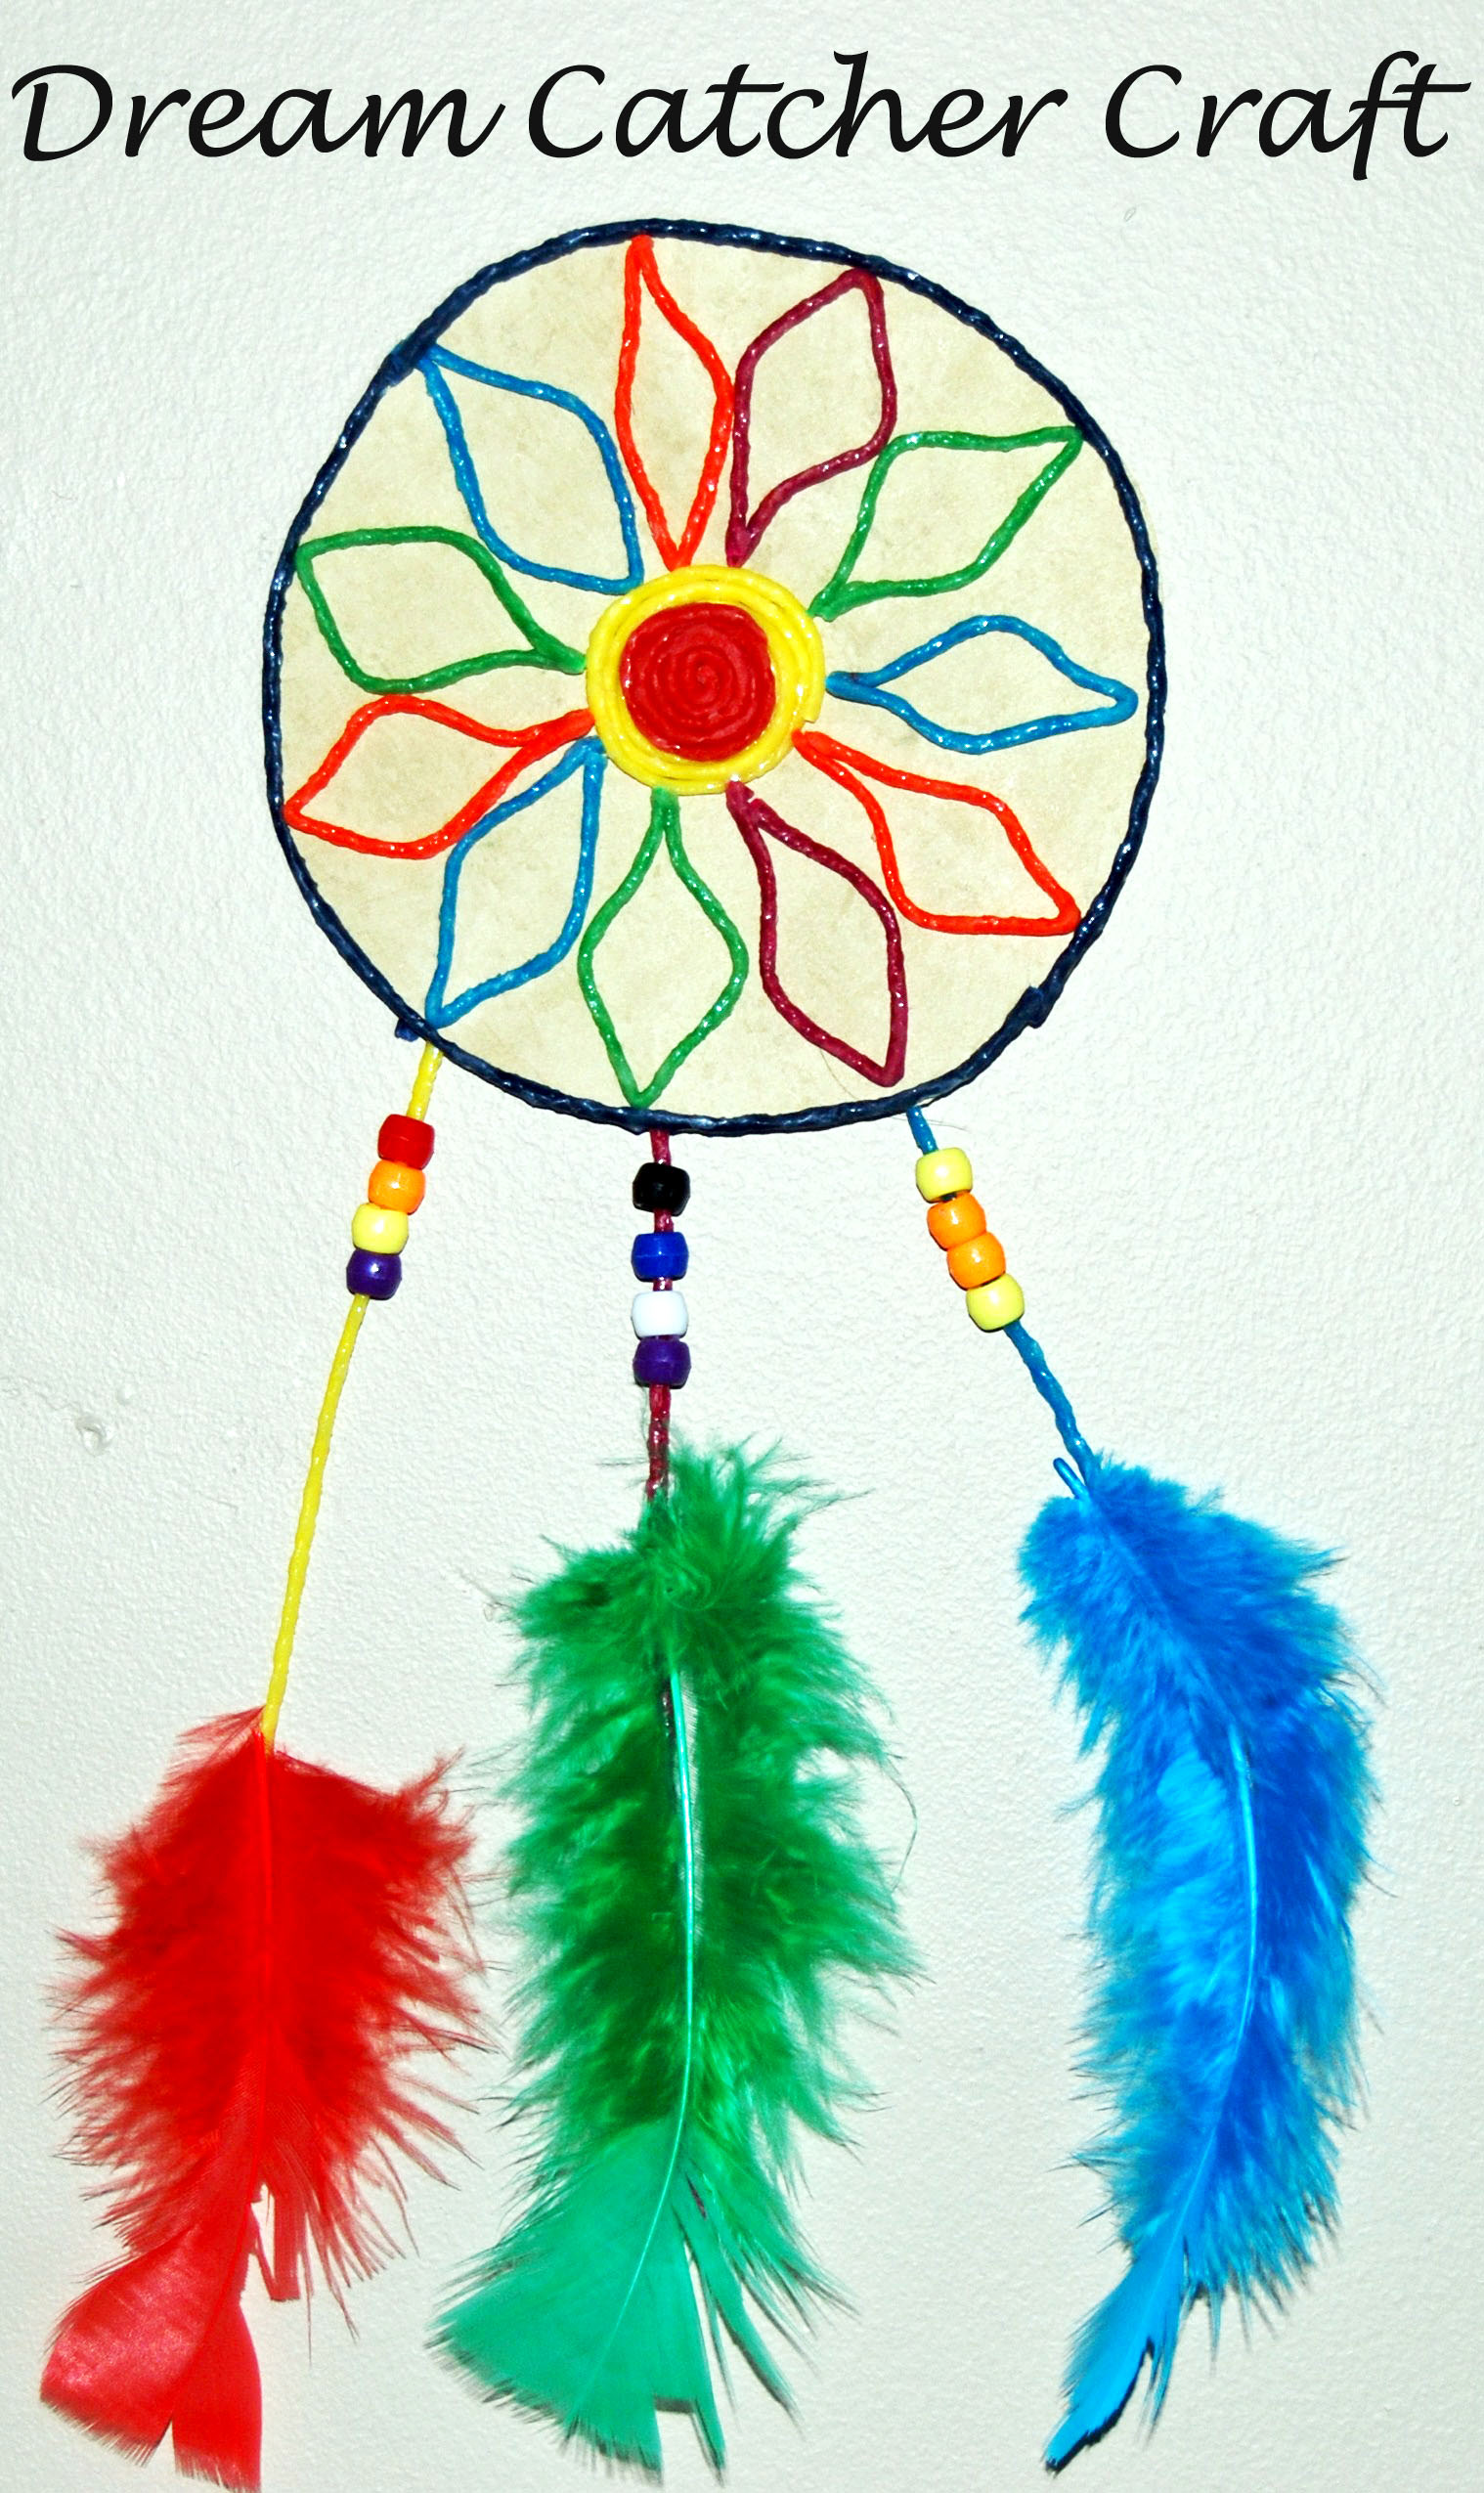 WS Dream Catcher Craft for Kids • The Preschool Toolbox Blog